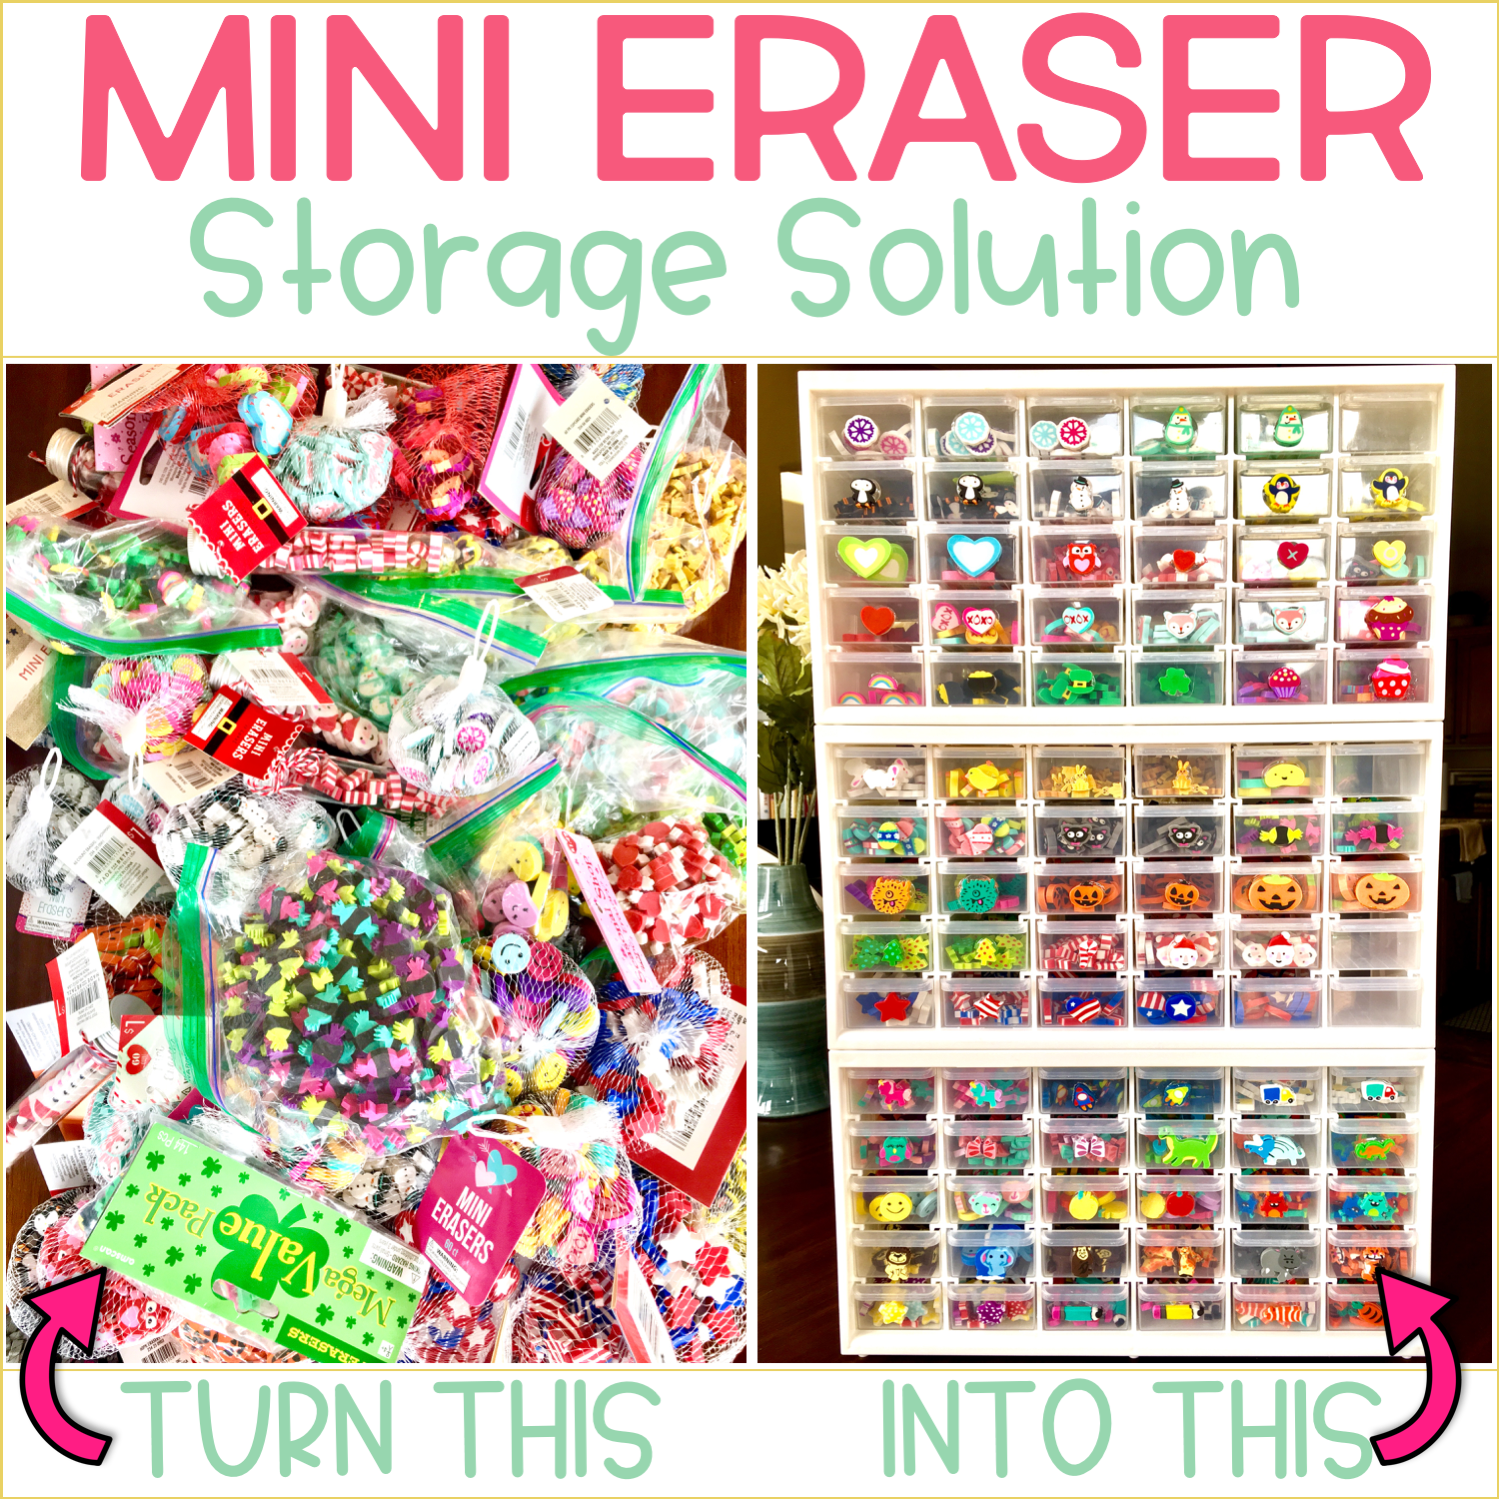 Mini Eraser Storage Solution for the Classroom